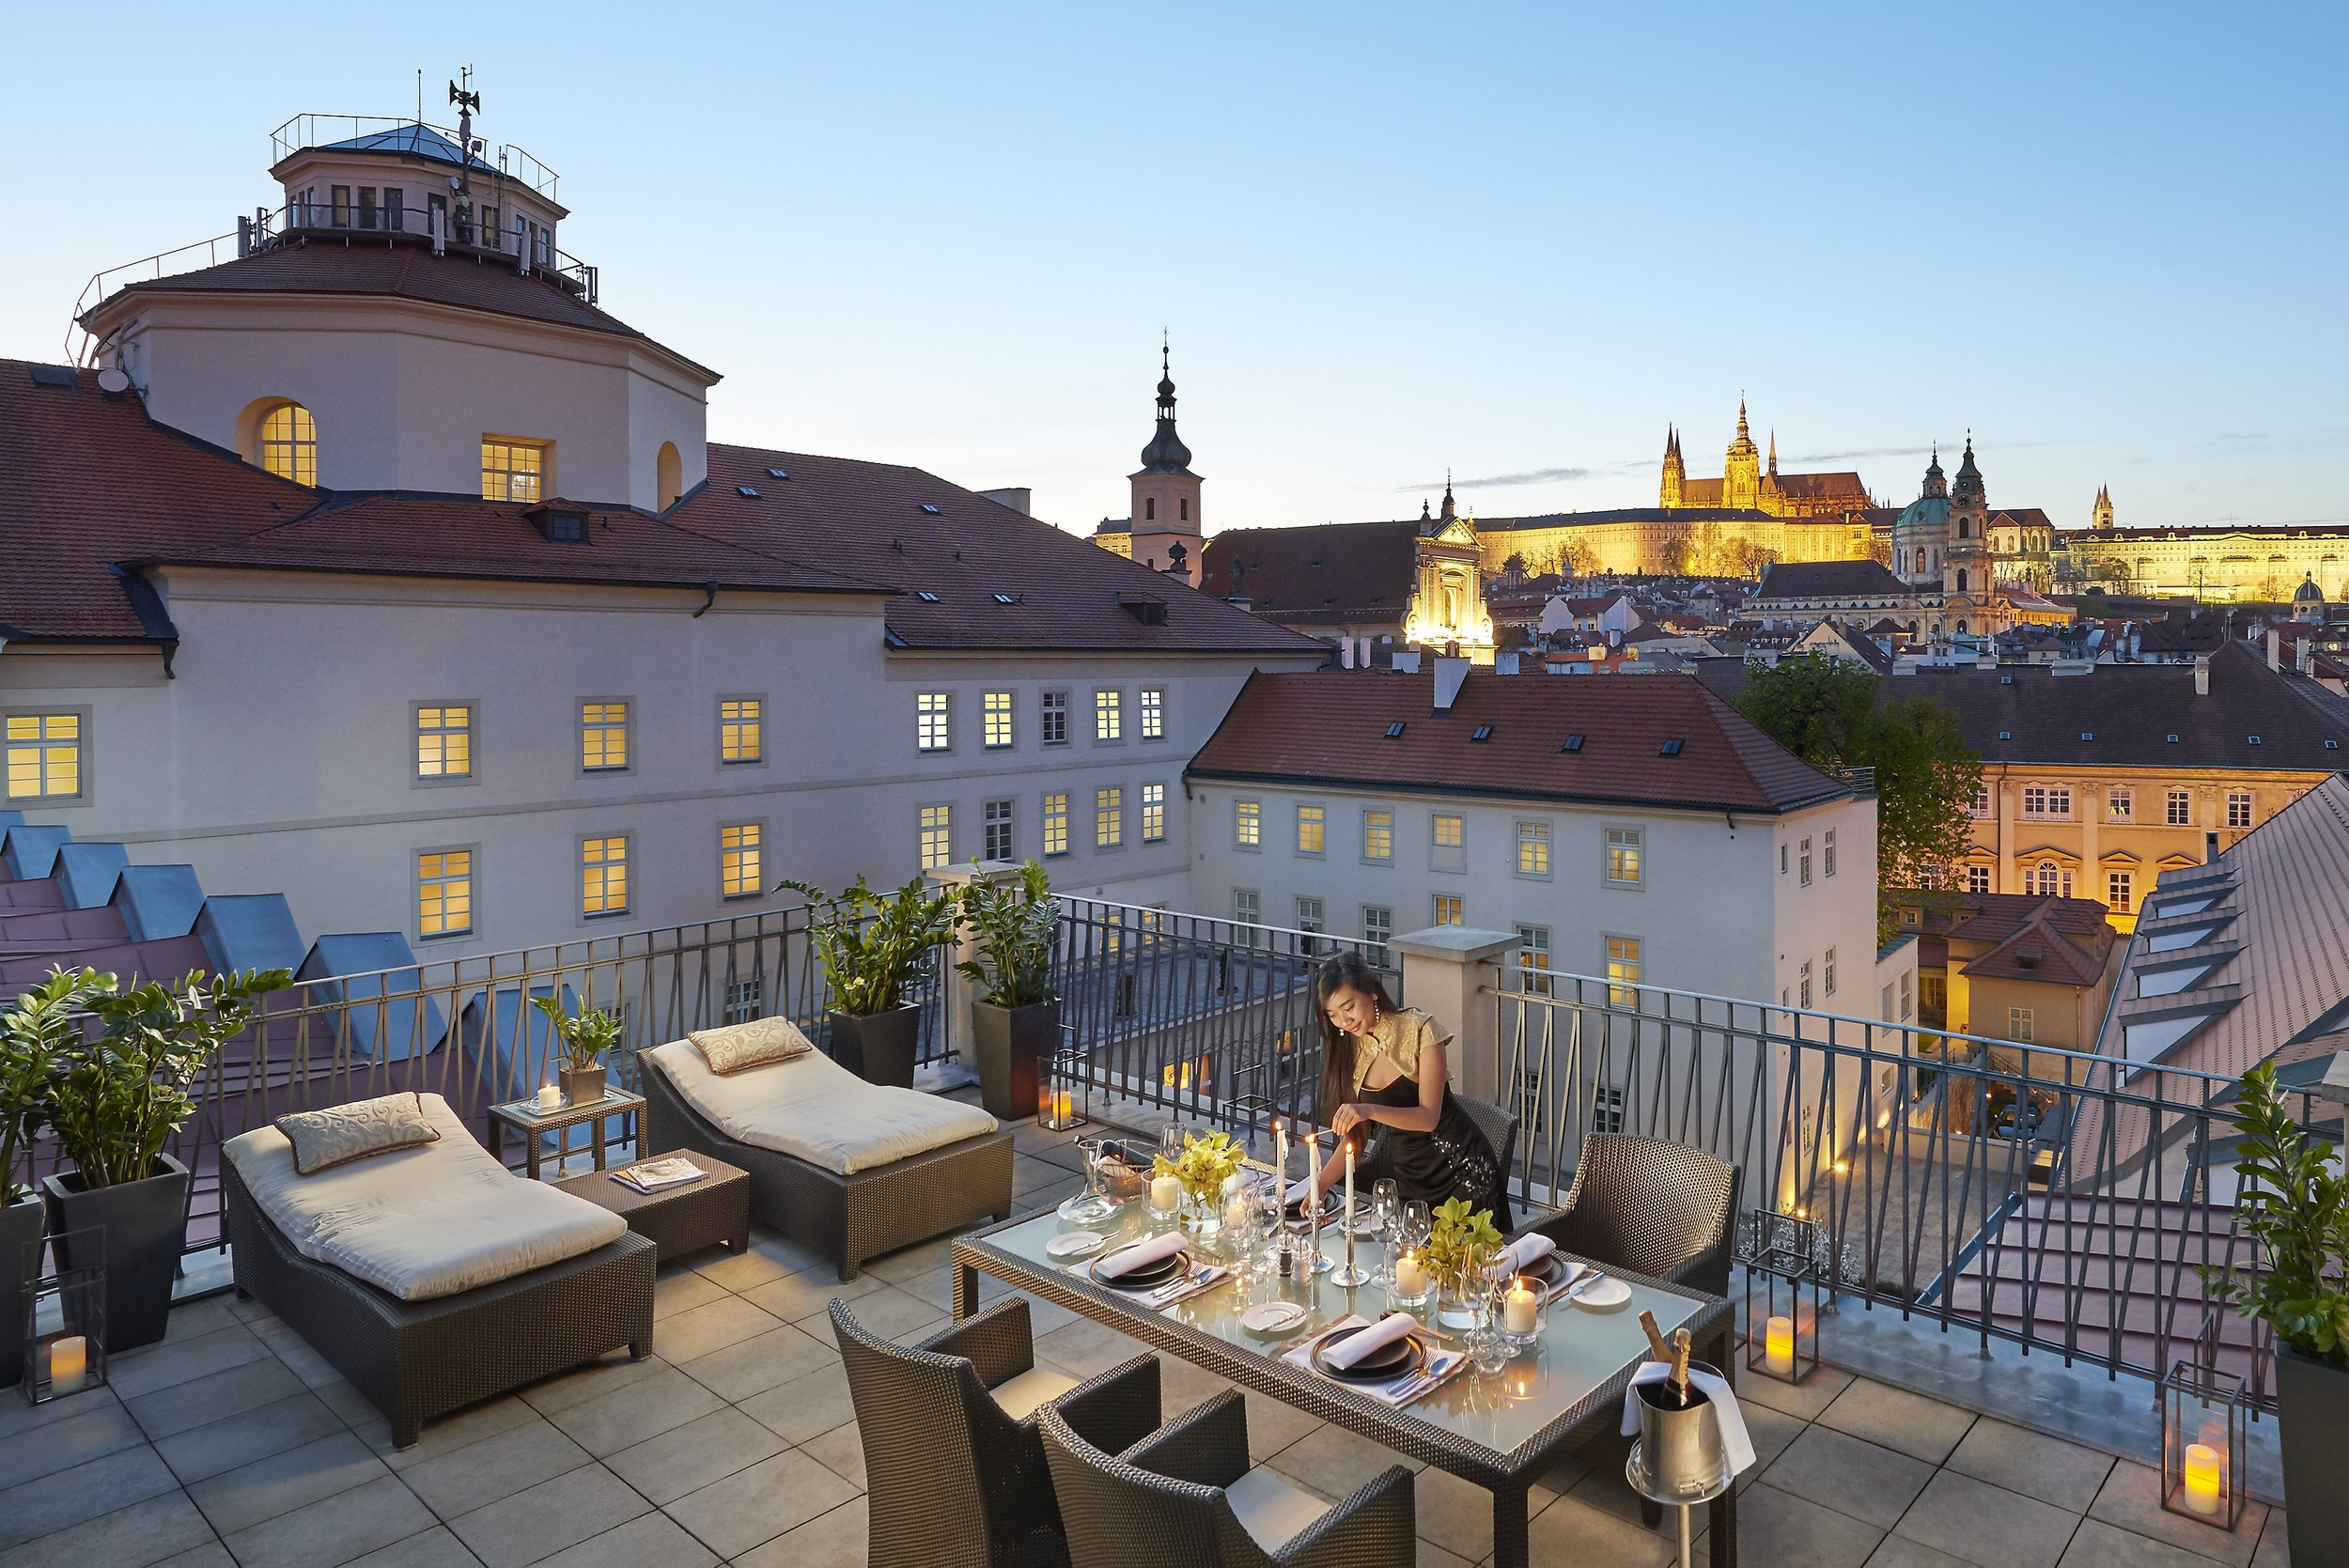 prague-15-suite-presidential-terrace-dusk-01-min.jpg